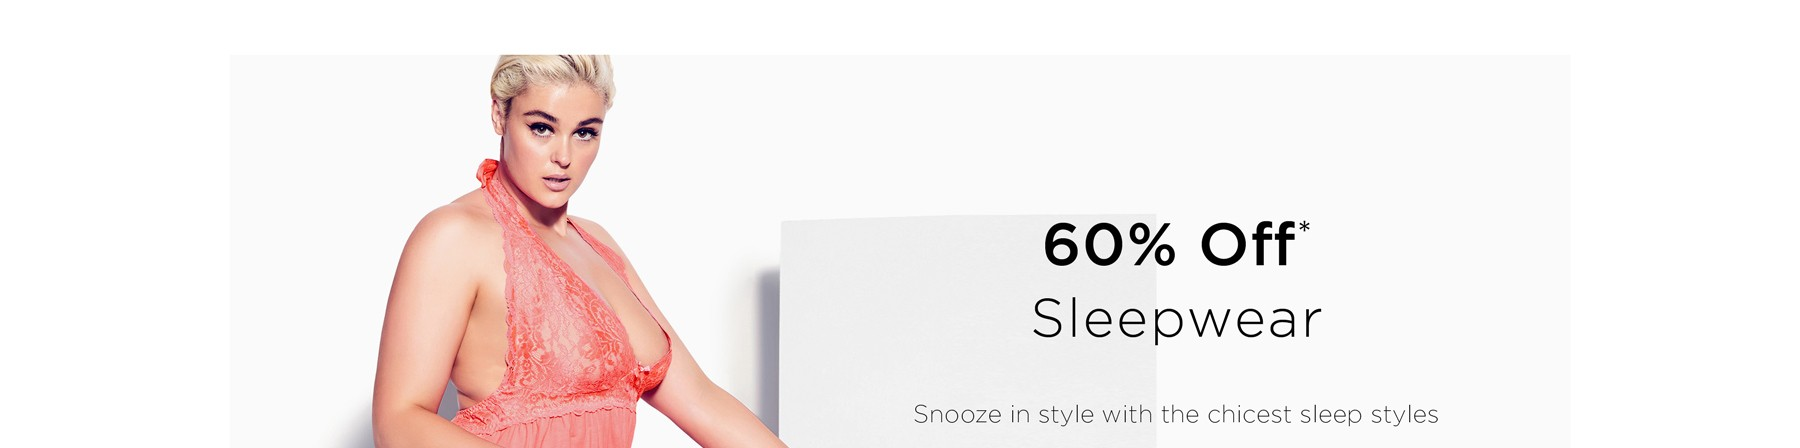 60% Off Sleepwear. Snooze in style with the chicest sleep styles.